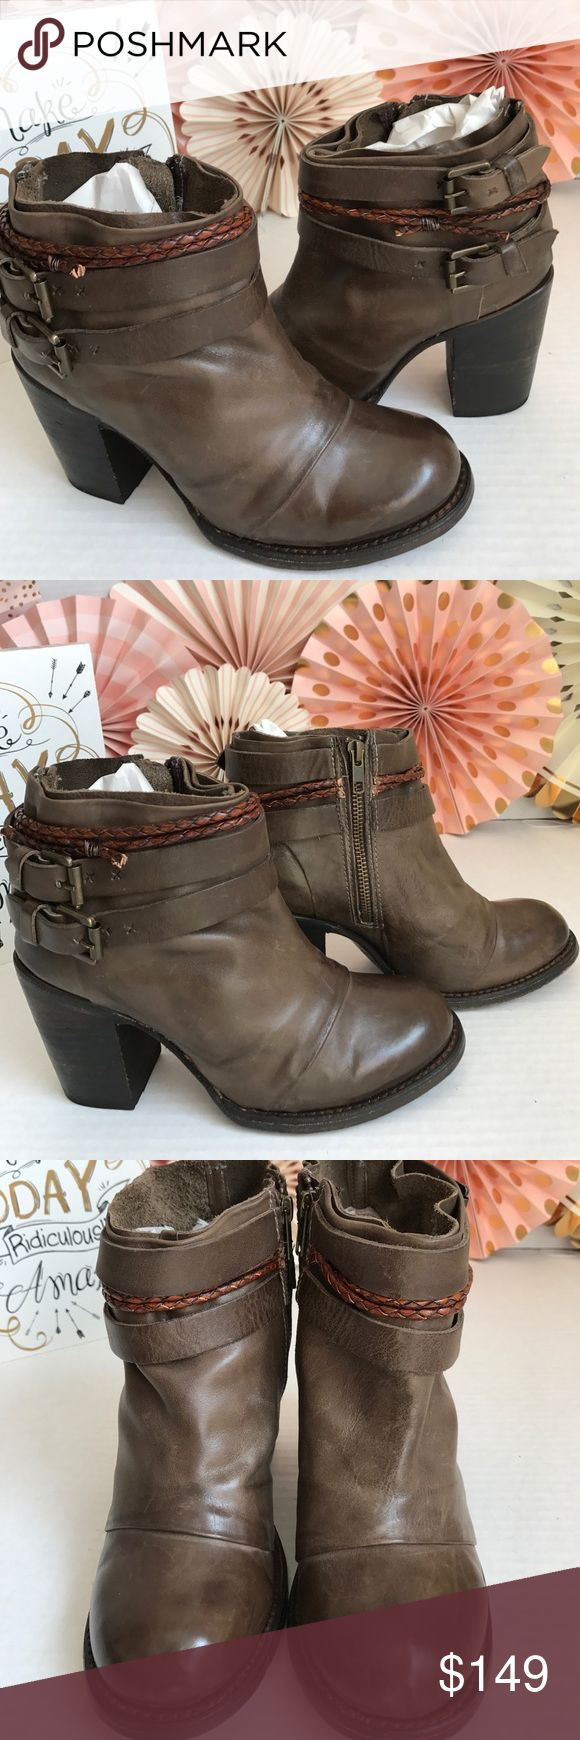 """Freebird by Steven Lion Bootie 🦁 Round toe. Topstitch construction. Side zip closure. Buckle strap detail. Braided strap detail. Stacked chunky heel. Approx. 3.5"""" heel. Approx. 5"""" shaft. Size 8M Gently Worn in Good Condition. No Box🎁 freebird by Steven Shoes Ankle Boots & Booties"""